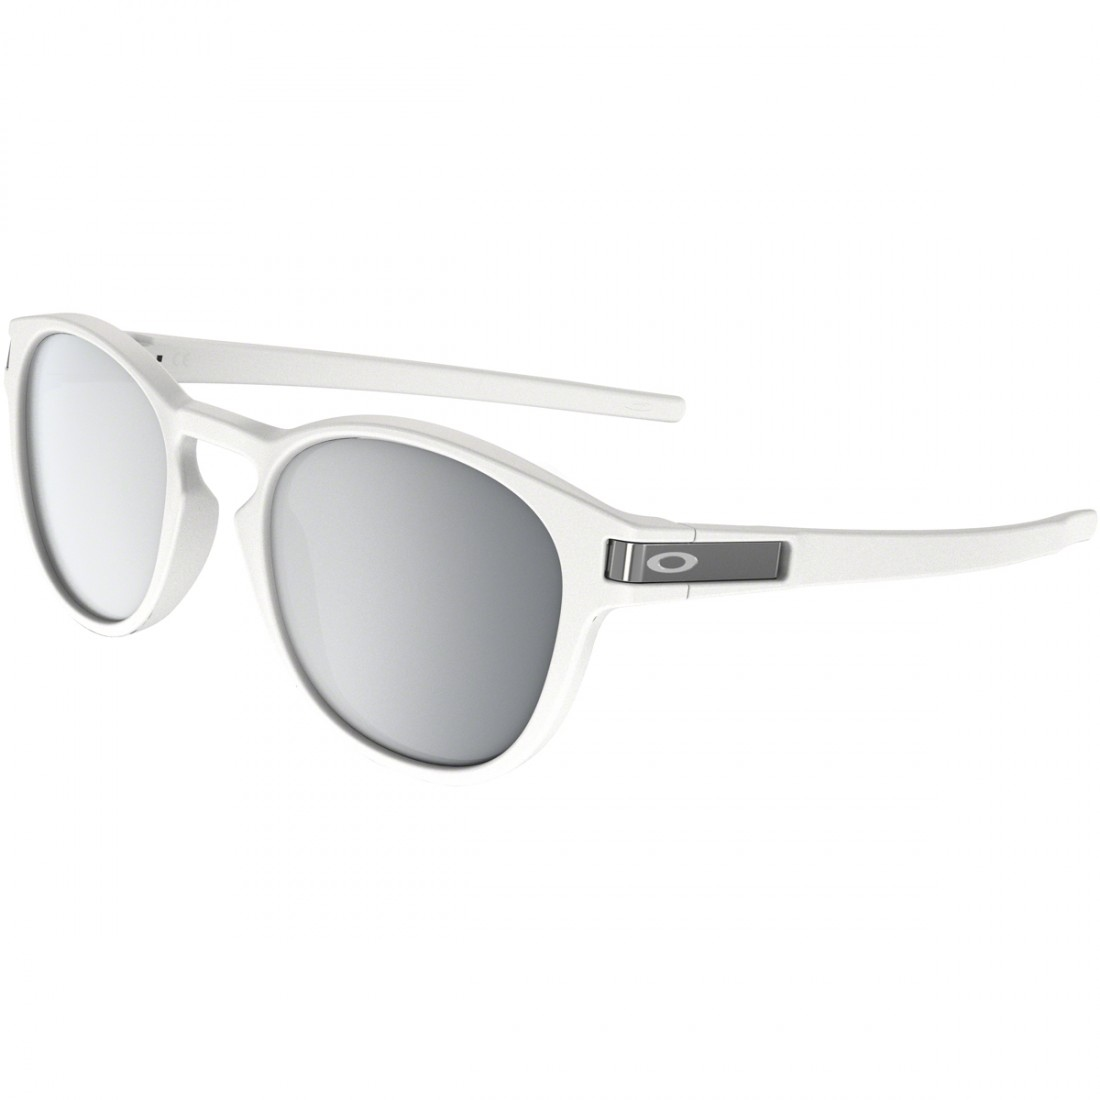 fc636f6d3 OAKLEY Latch Matte White / Chrome Iridium Sun glasses